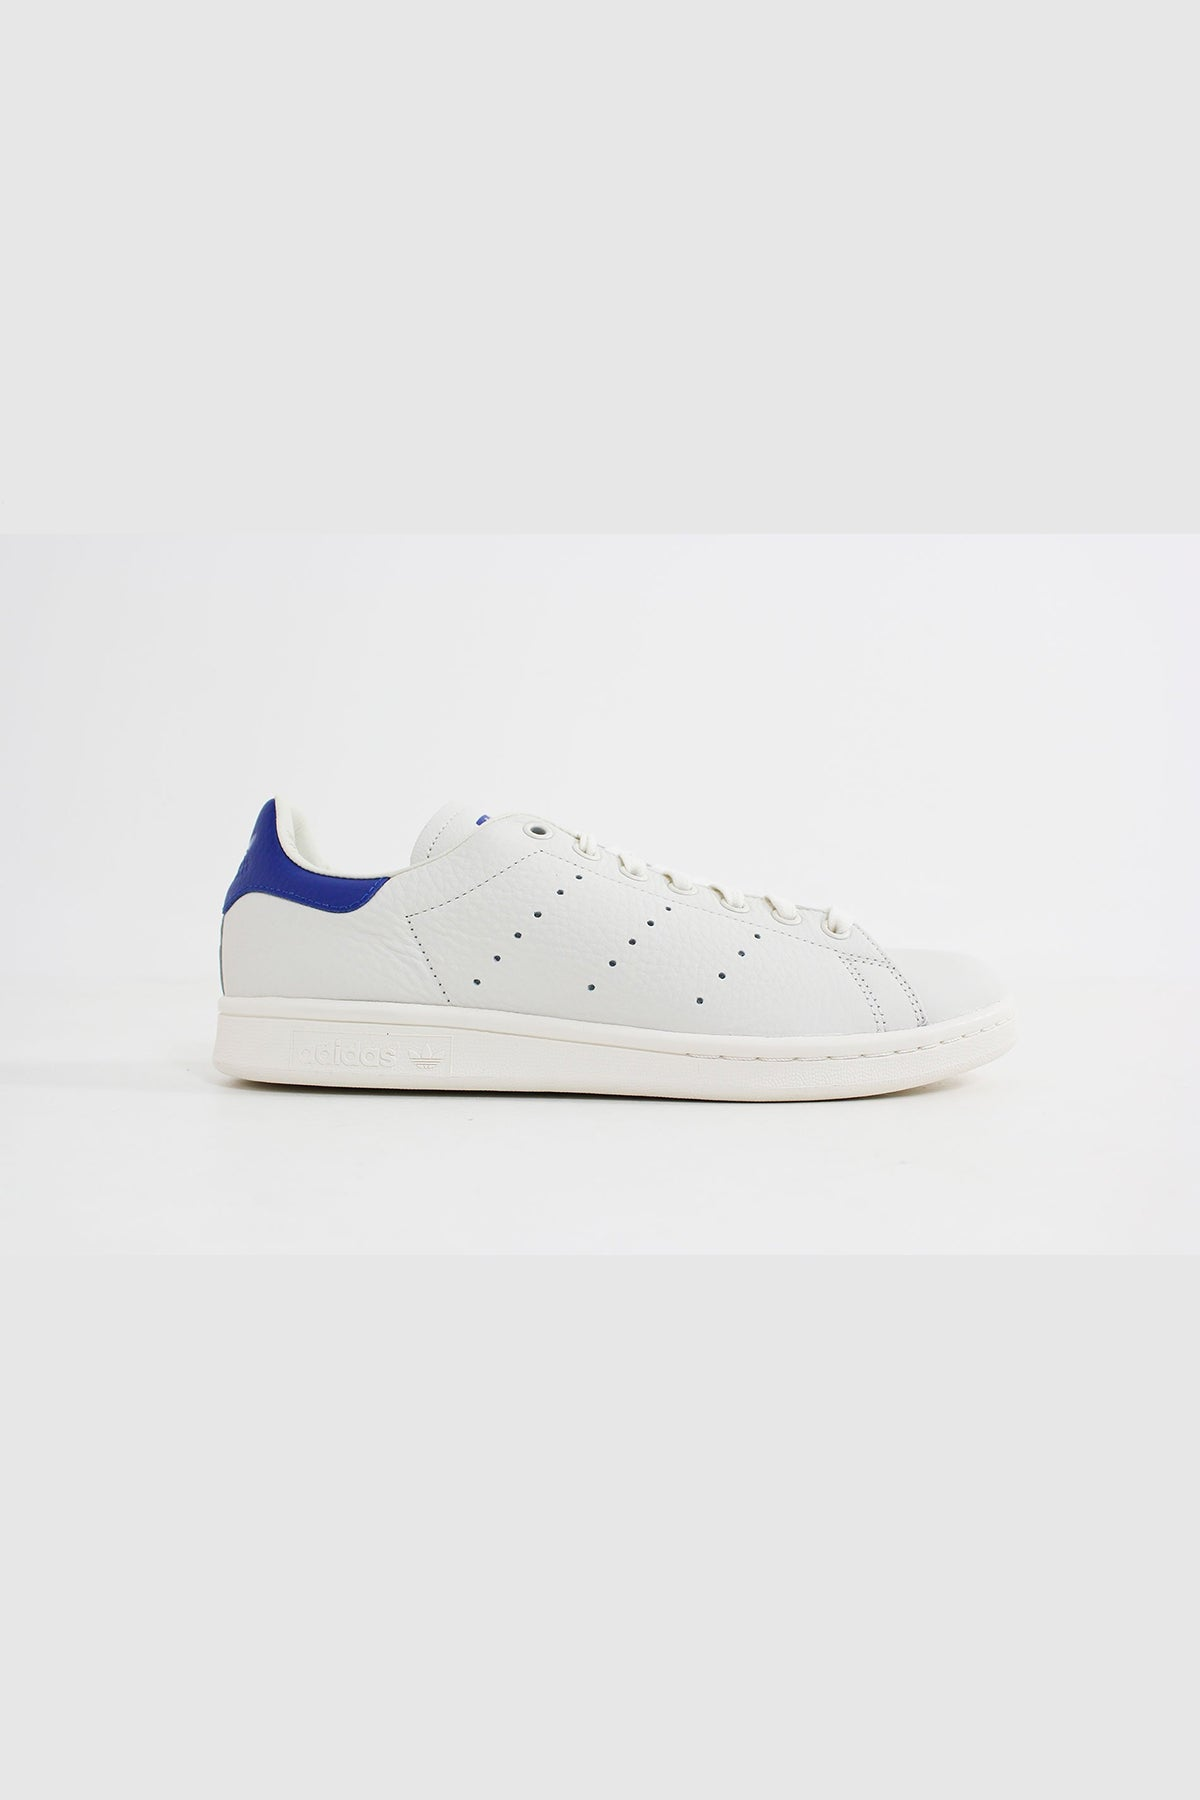 Adidas - Stan Smith (White/ White/ Royal) B37899